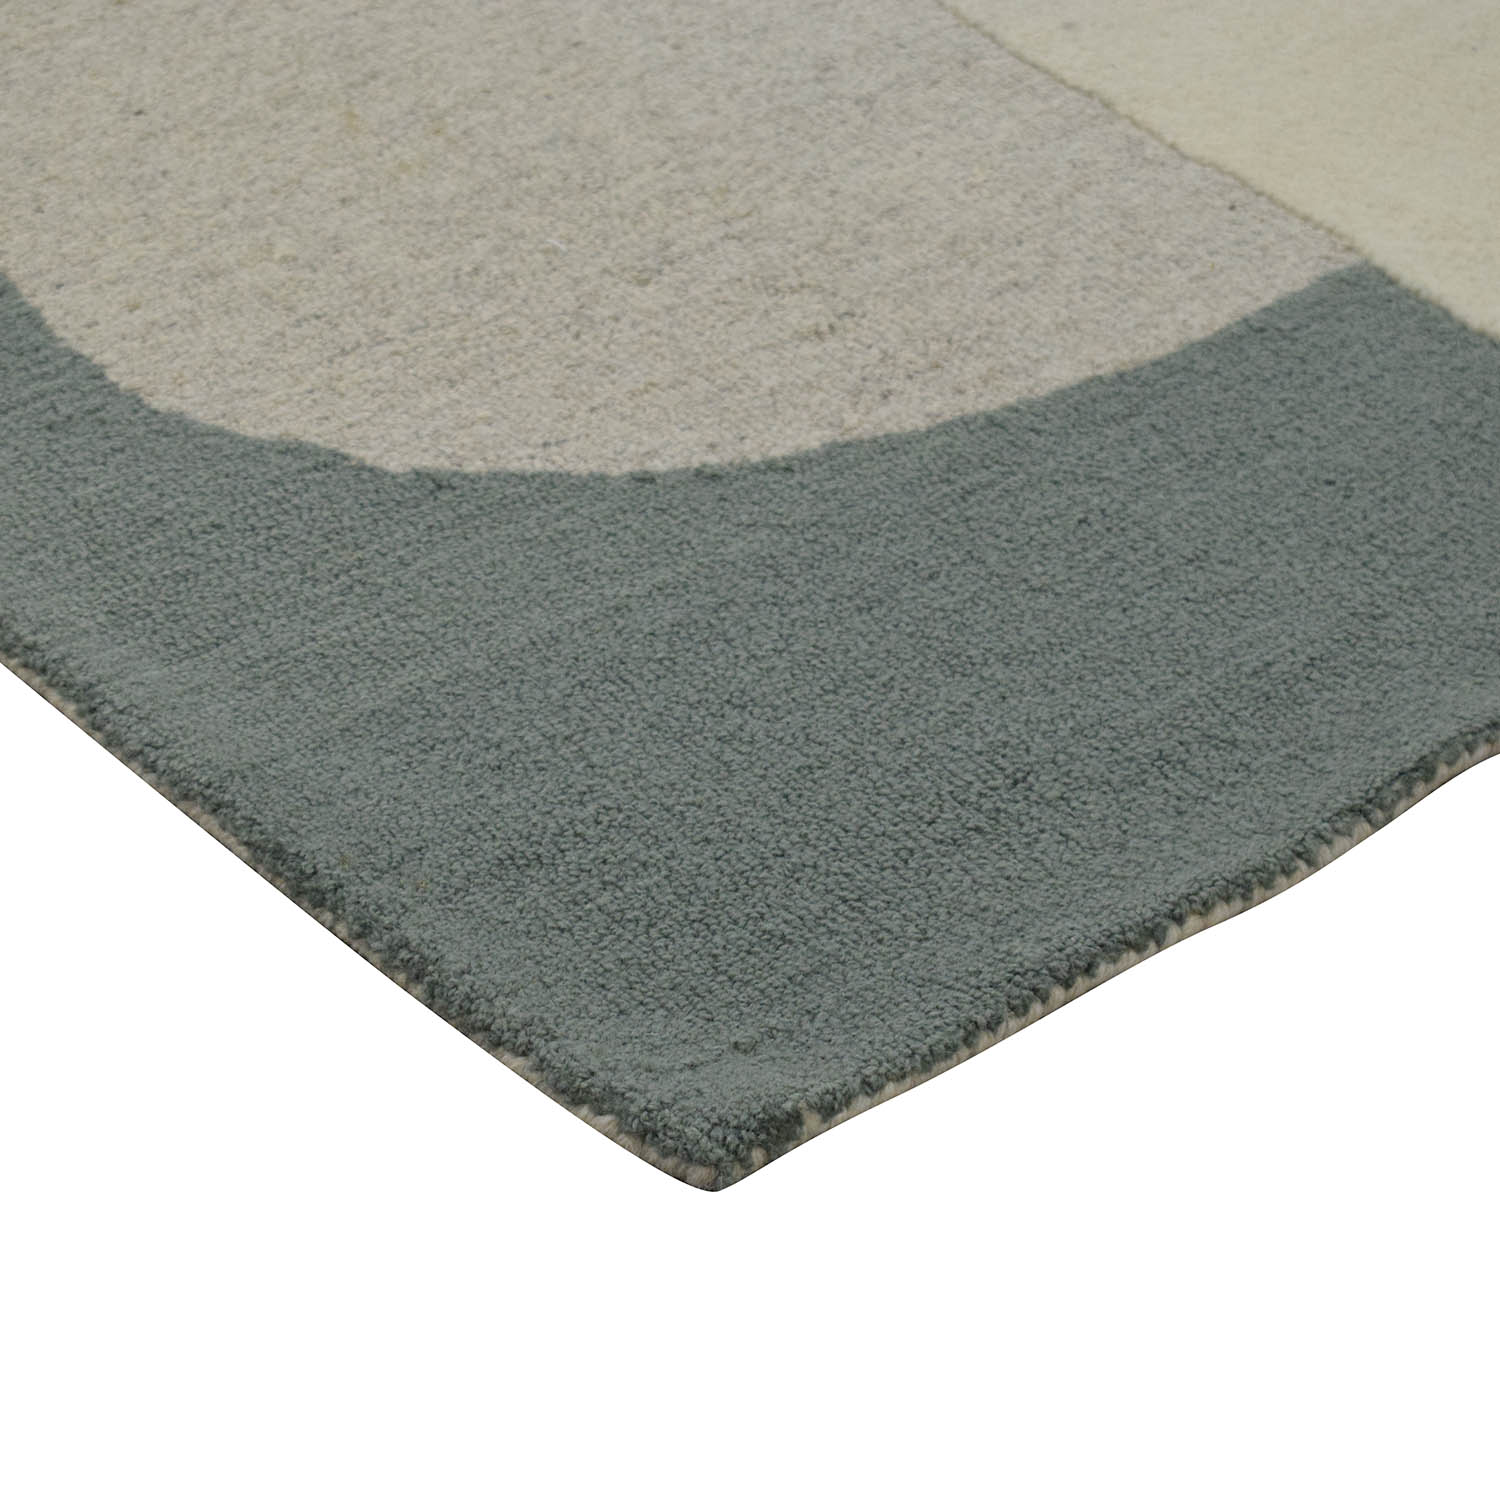 West Elm West Elm Chris Wynter Abstract Special Order Wool Rug nyc